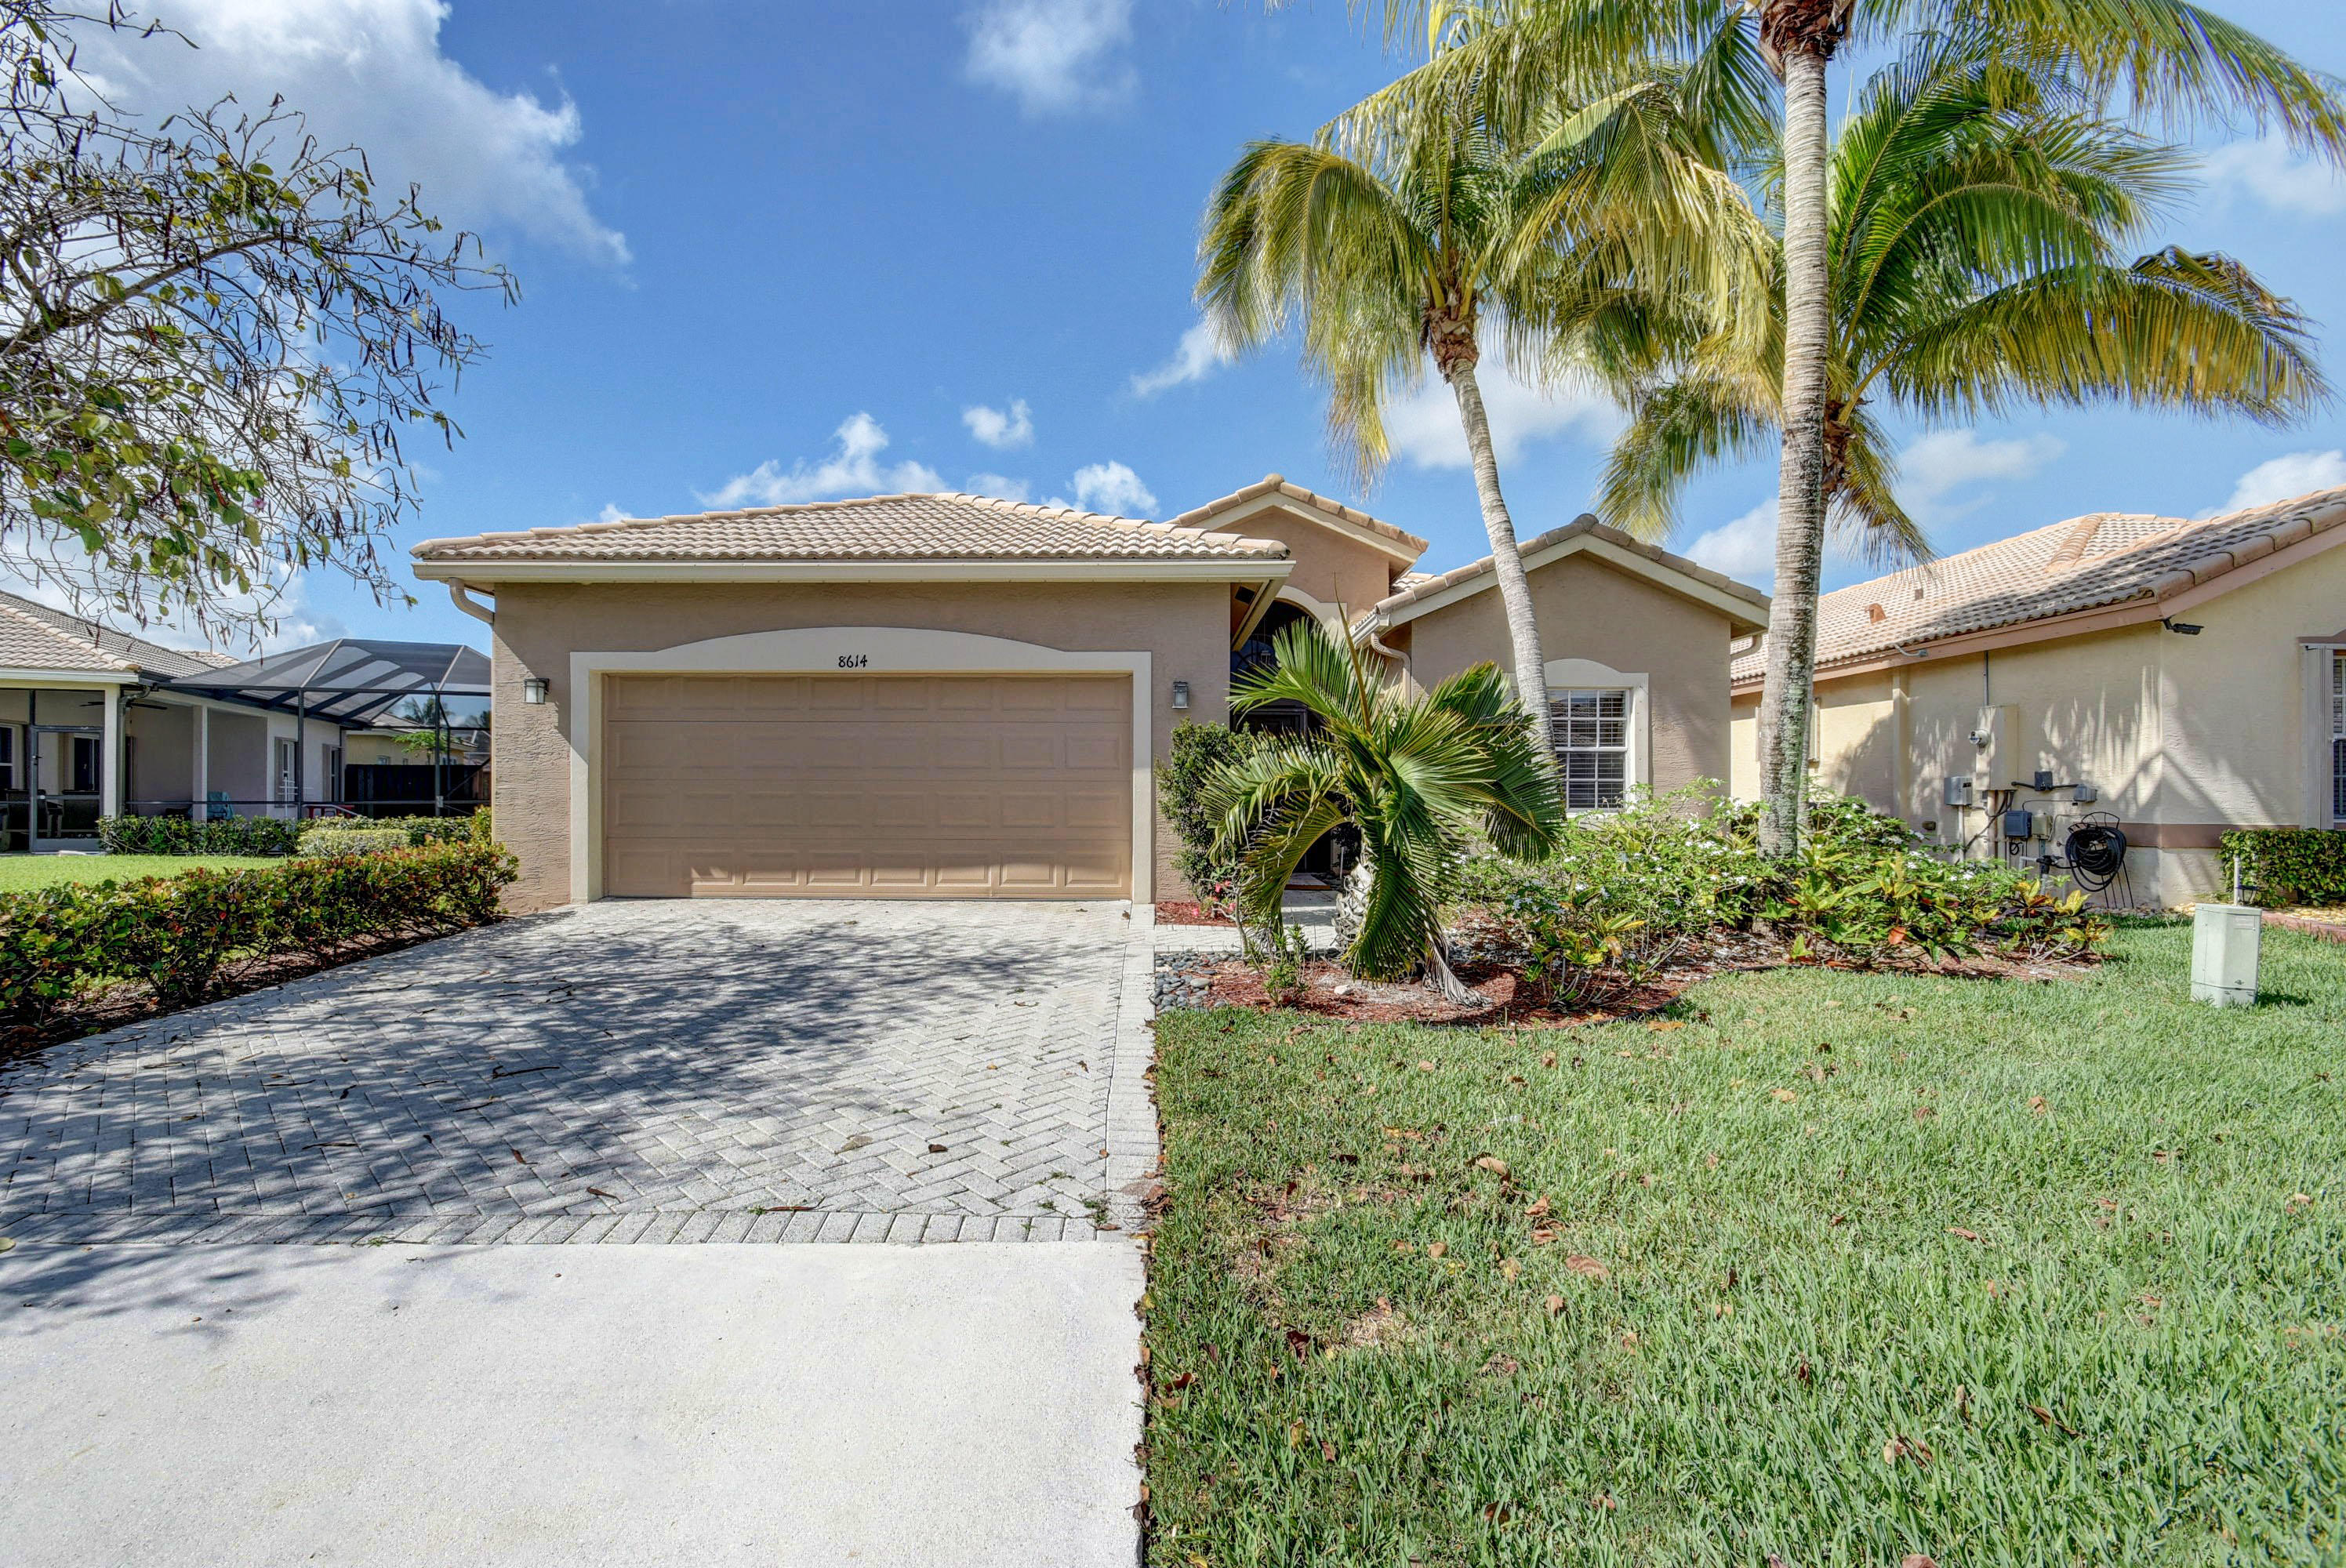 8614 Green Cay - West Palm Beach, Florida